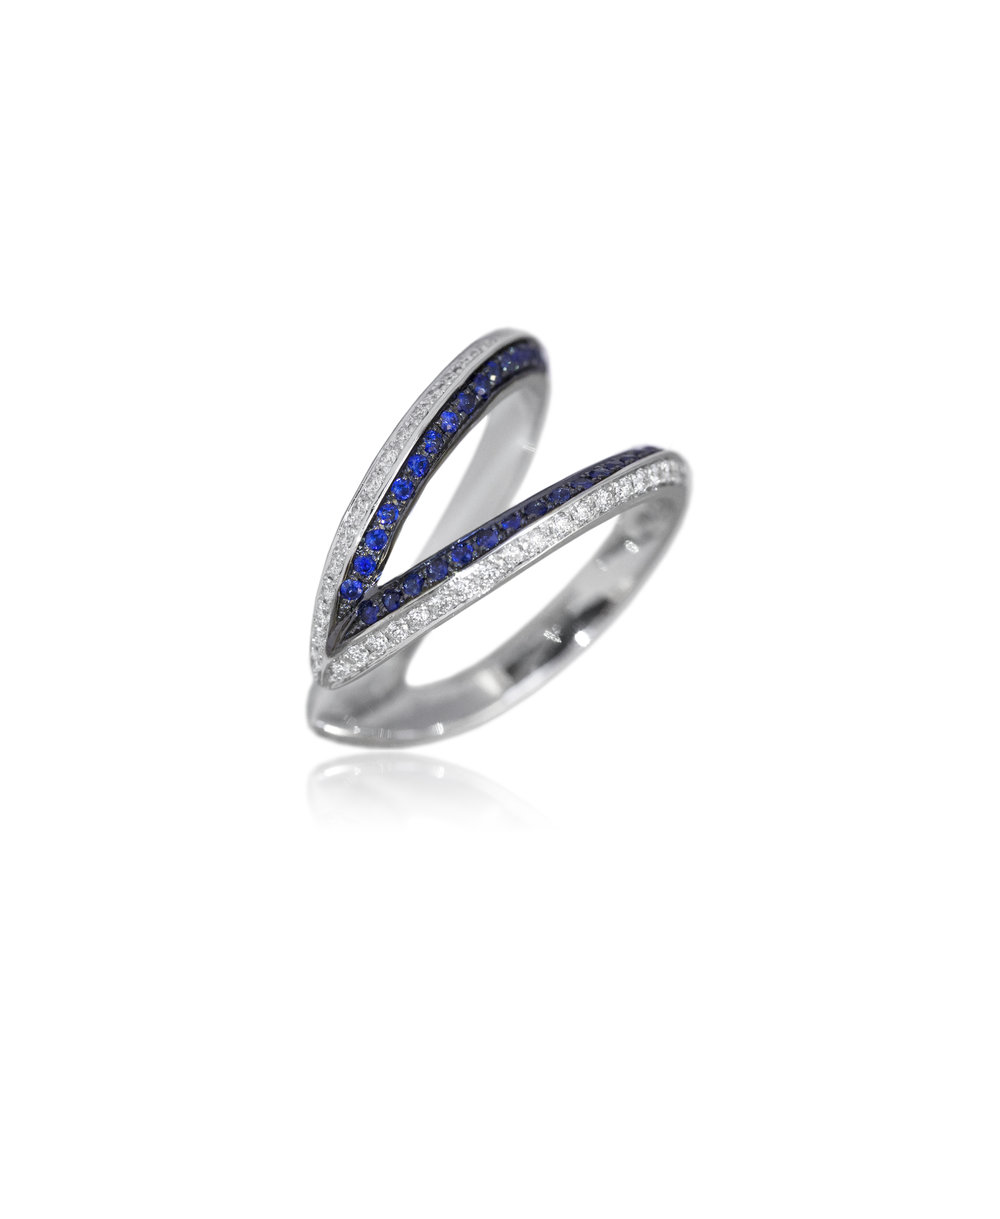 Ring  18KT White Gold, Diamonds, Sapphires  REF. MOW145